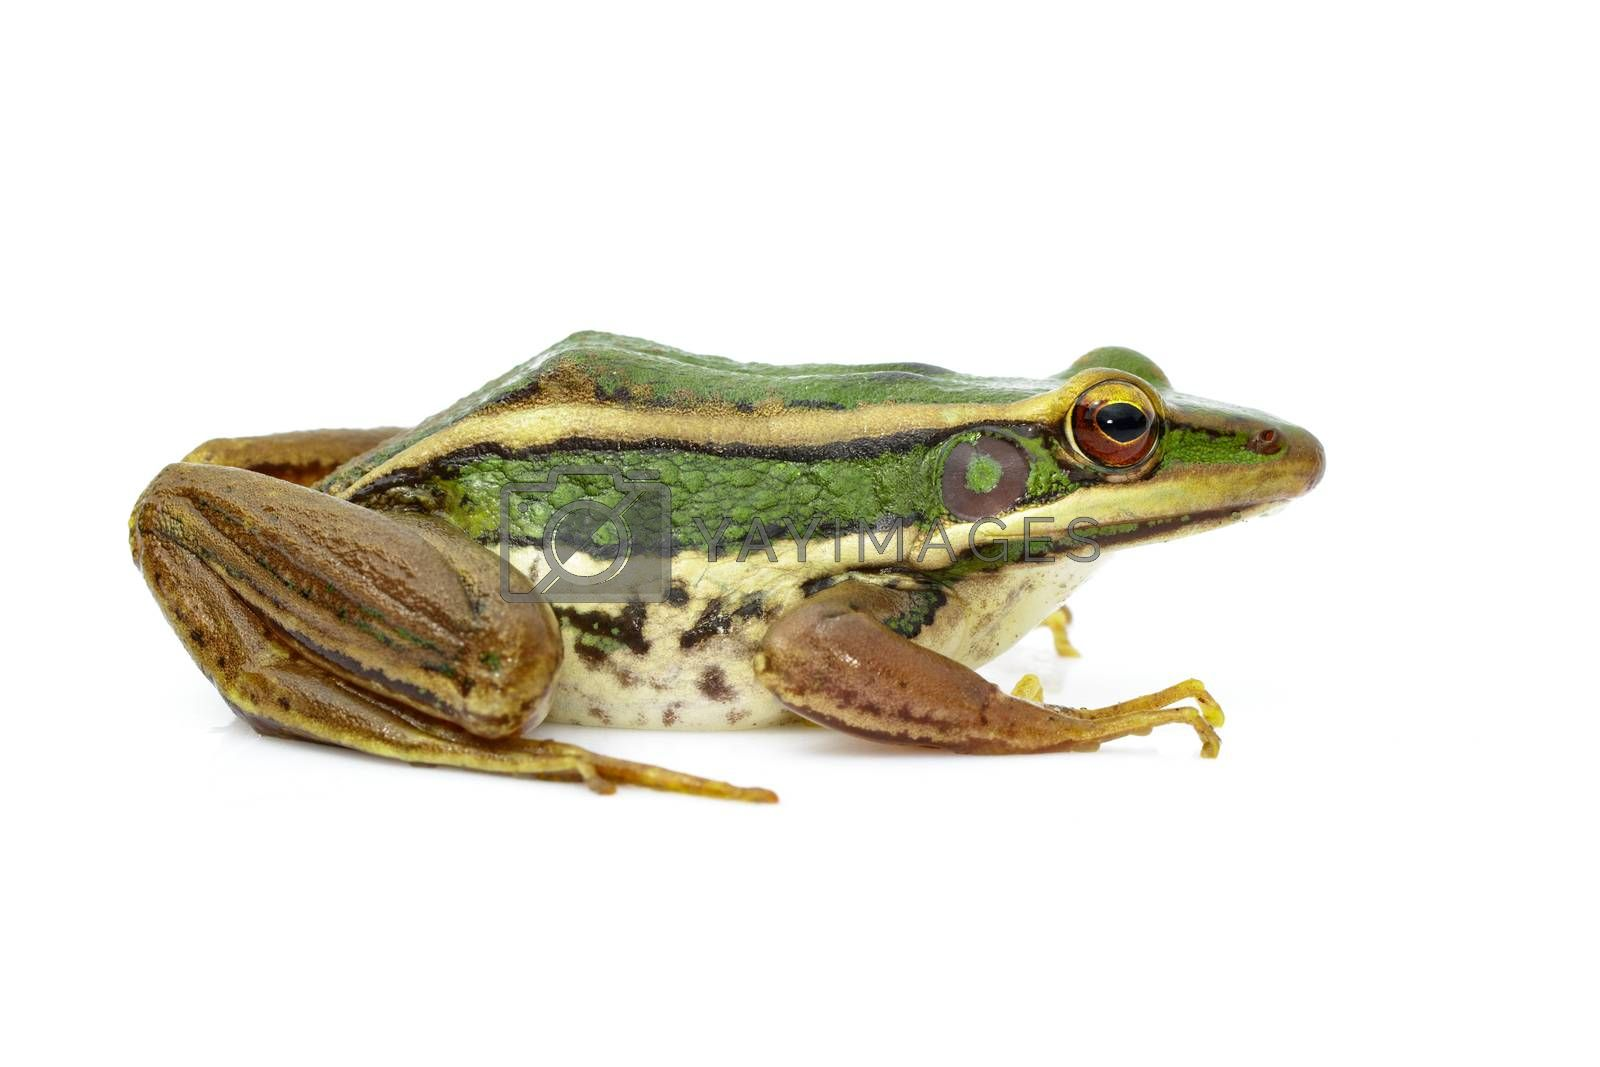 Image of paddy field green frog or Green Paddy Frog (Rana erythraea) on a white background. Amphibian. Animal.